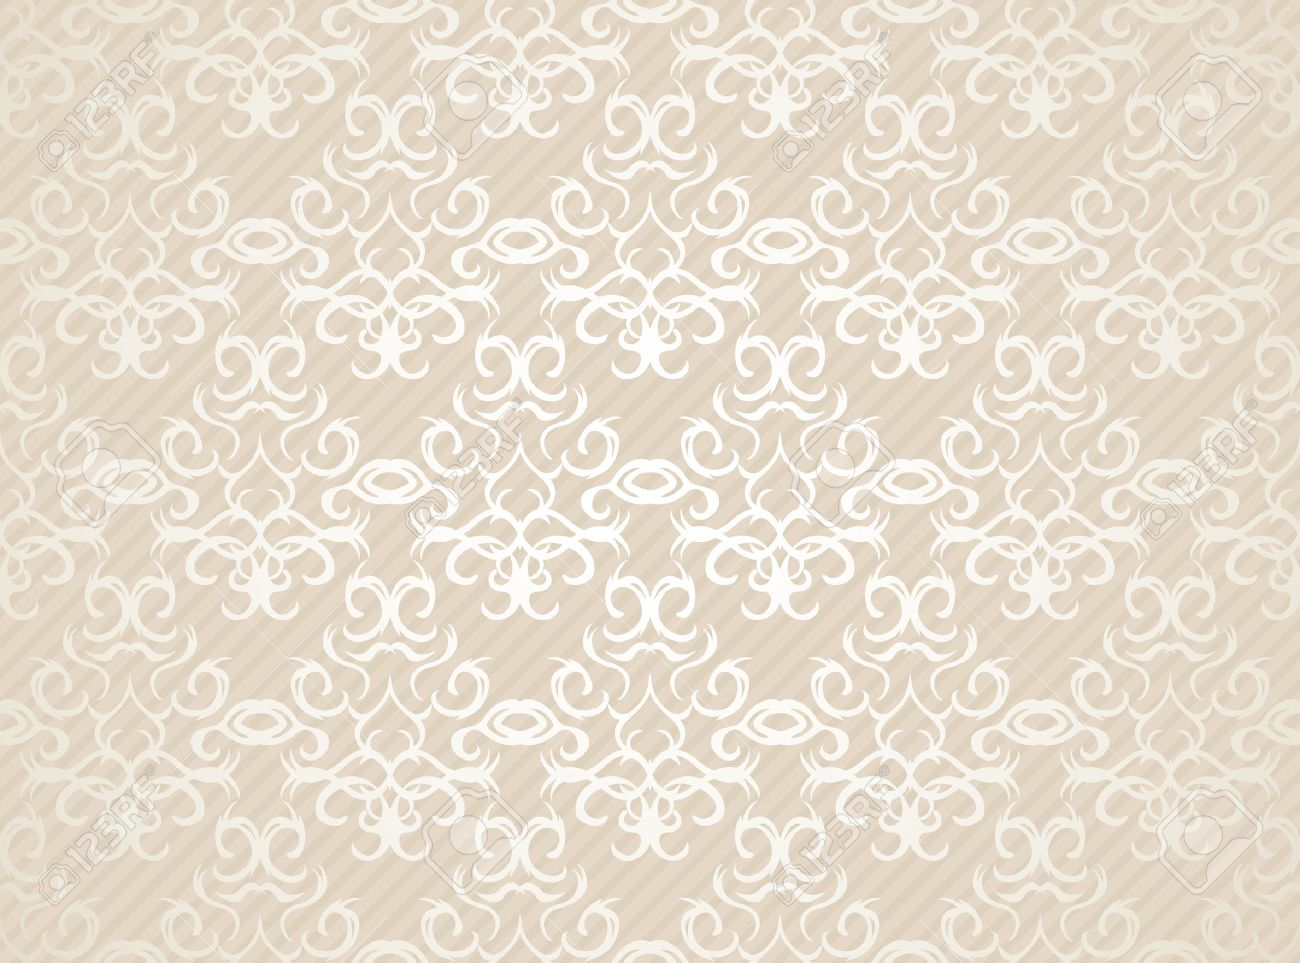 Seamless damask wallpaper. Pastel colors. Vintage background